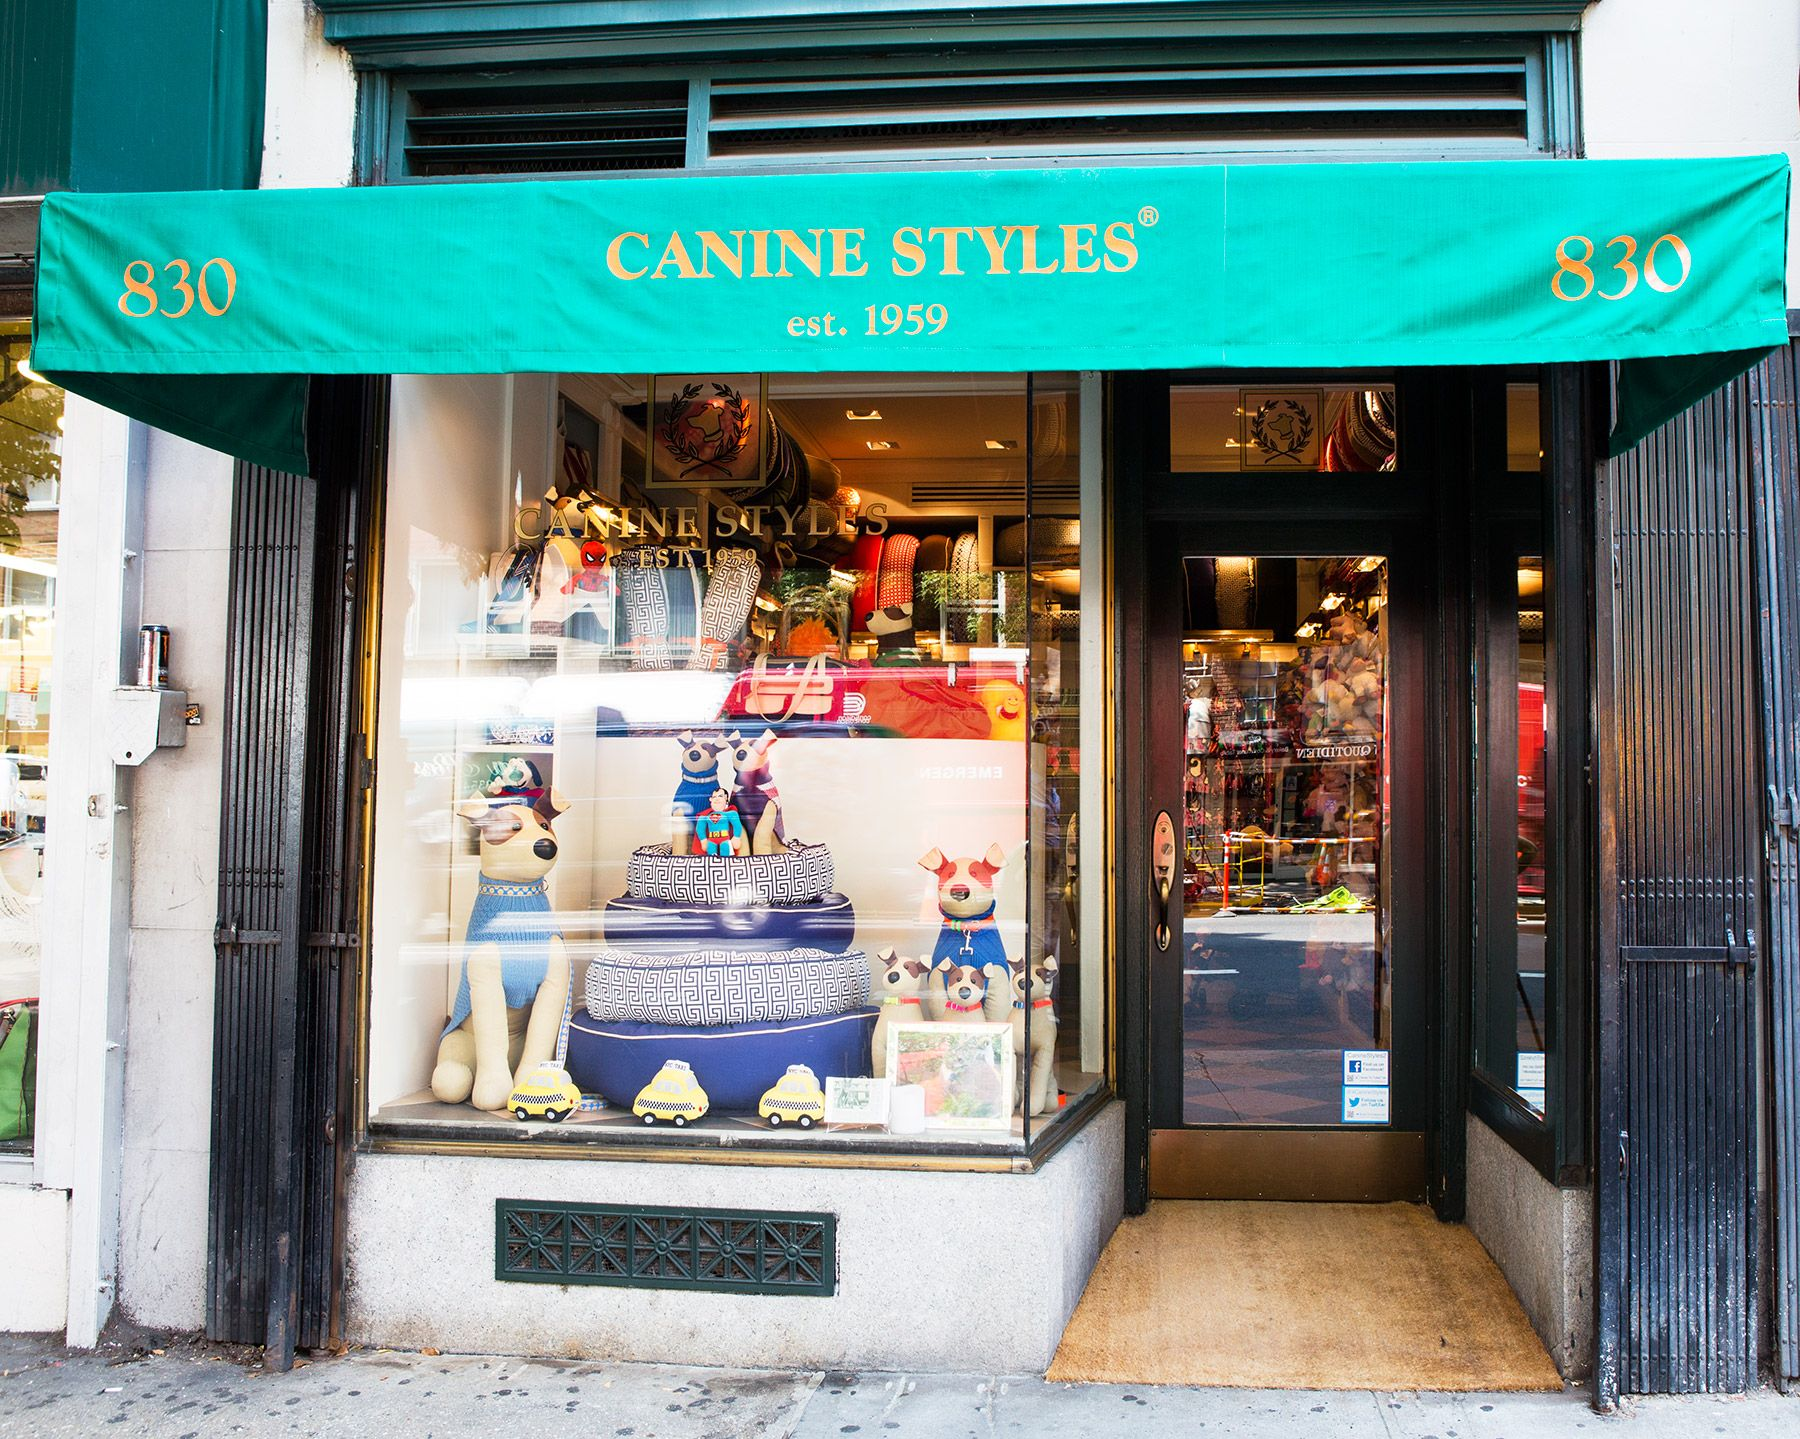 Canine Styles A Lifestyle For Dogs Dog Boutique Ideas Pet Store Display Dog Store